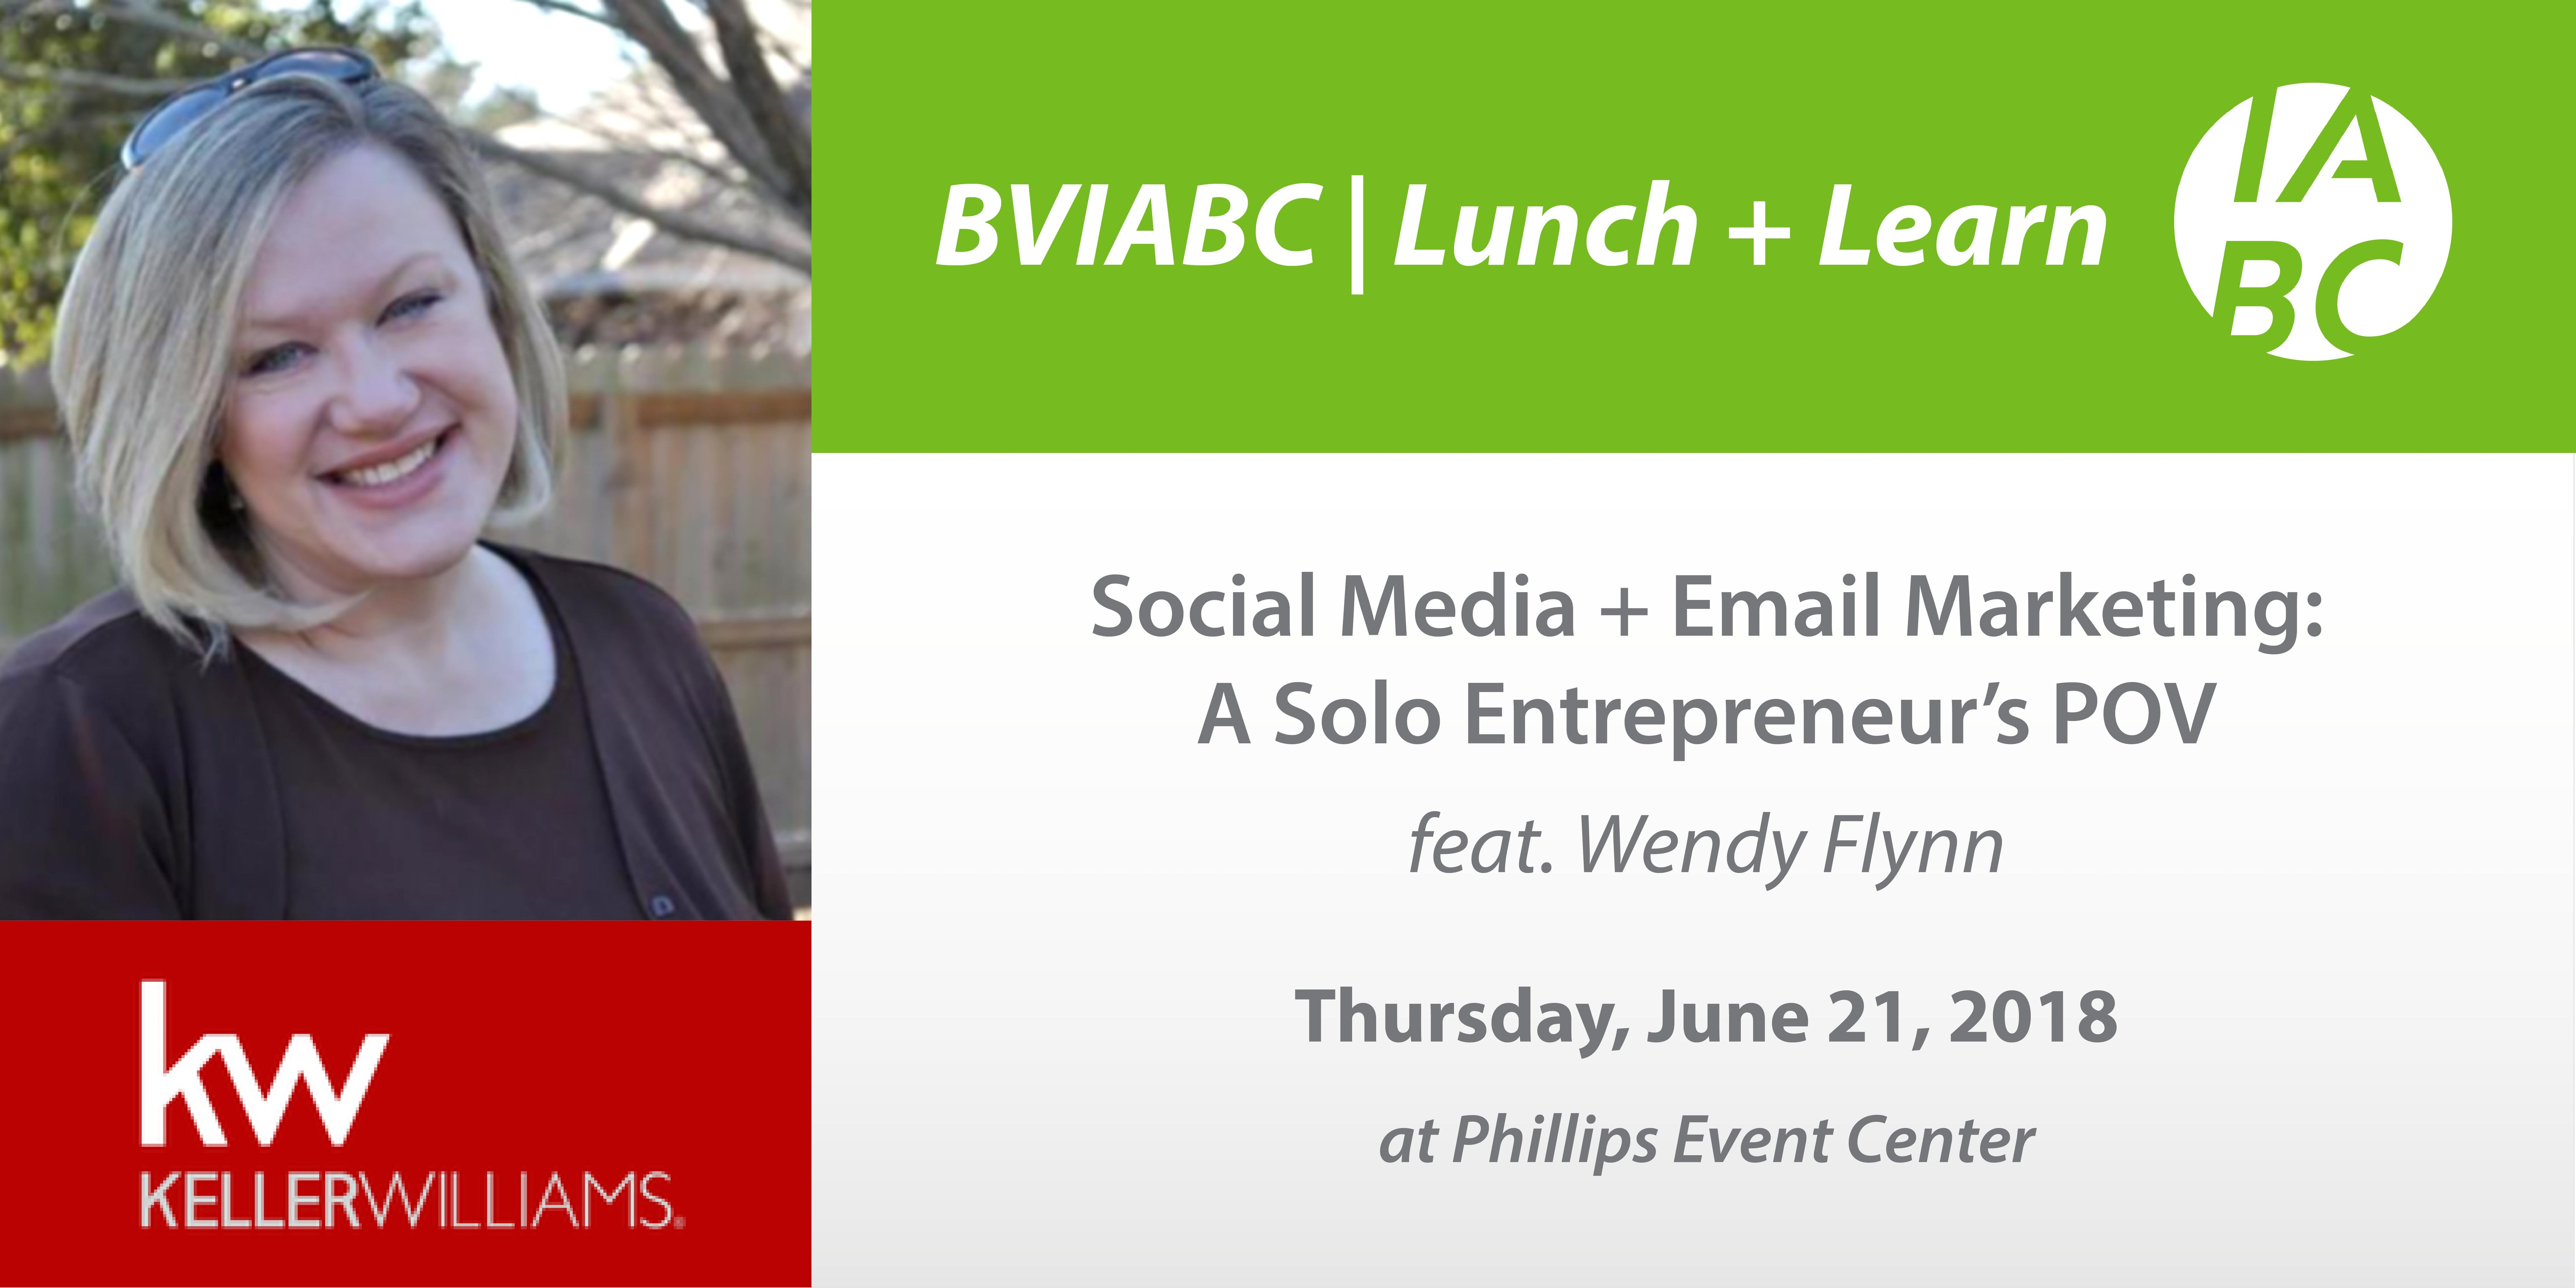 BVIABC  June Lunch  Learn  &quotSocial Media  Email Marketing  A Solo Entrepreneurs POV&quot feat. Wendy Flynn MA